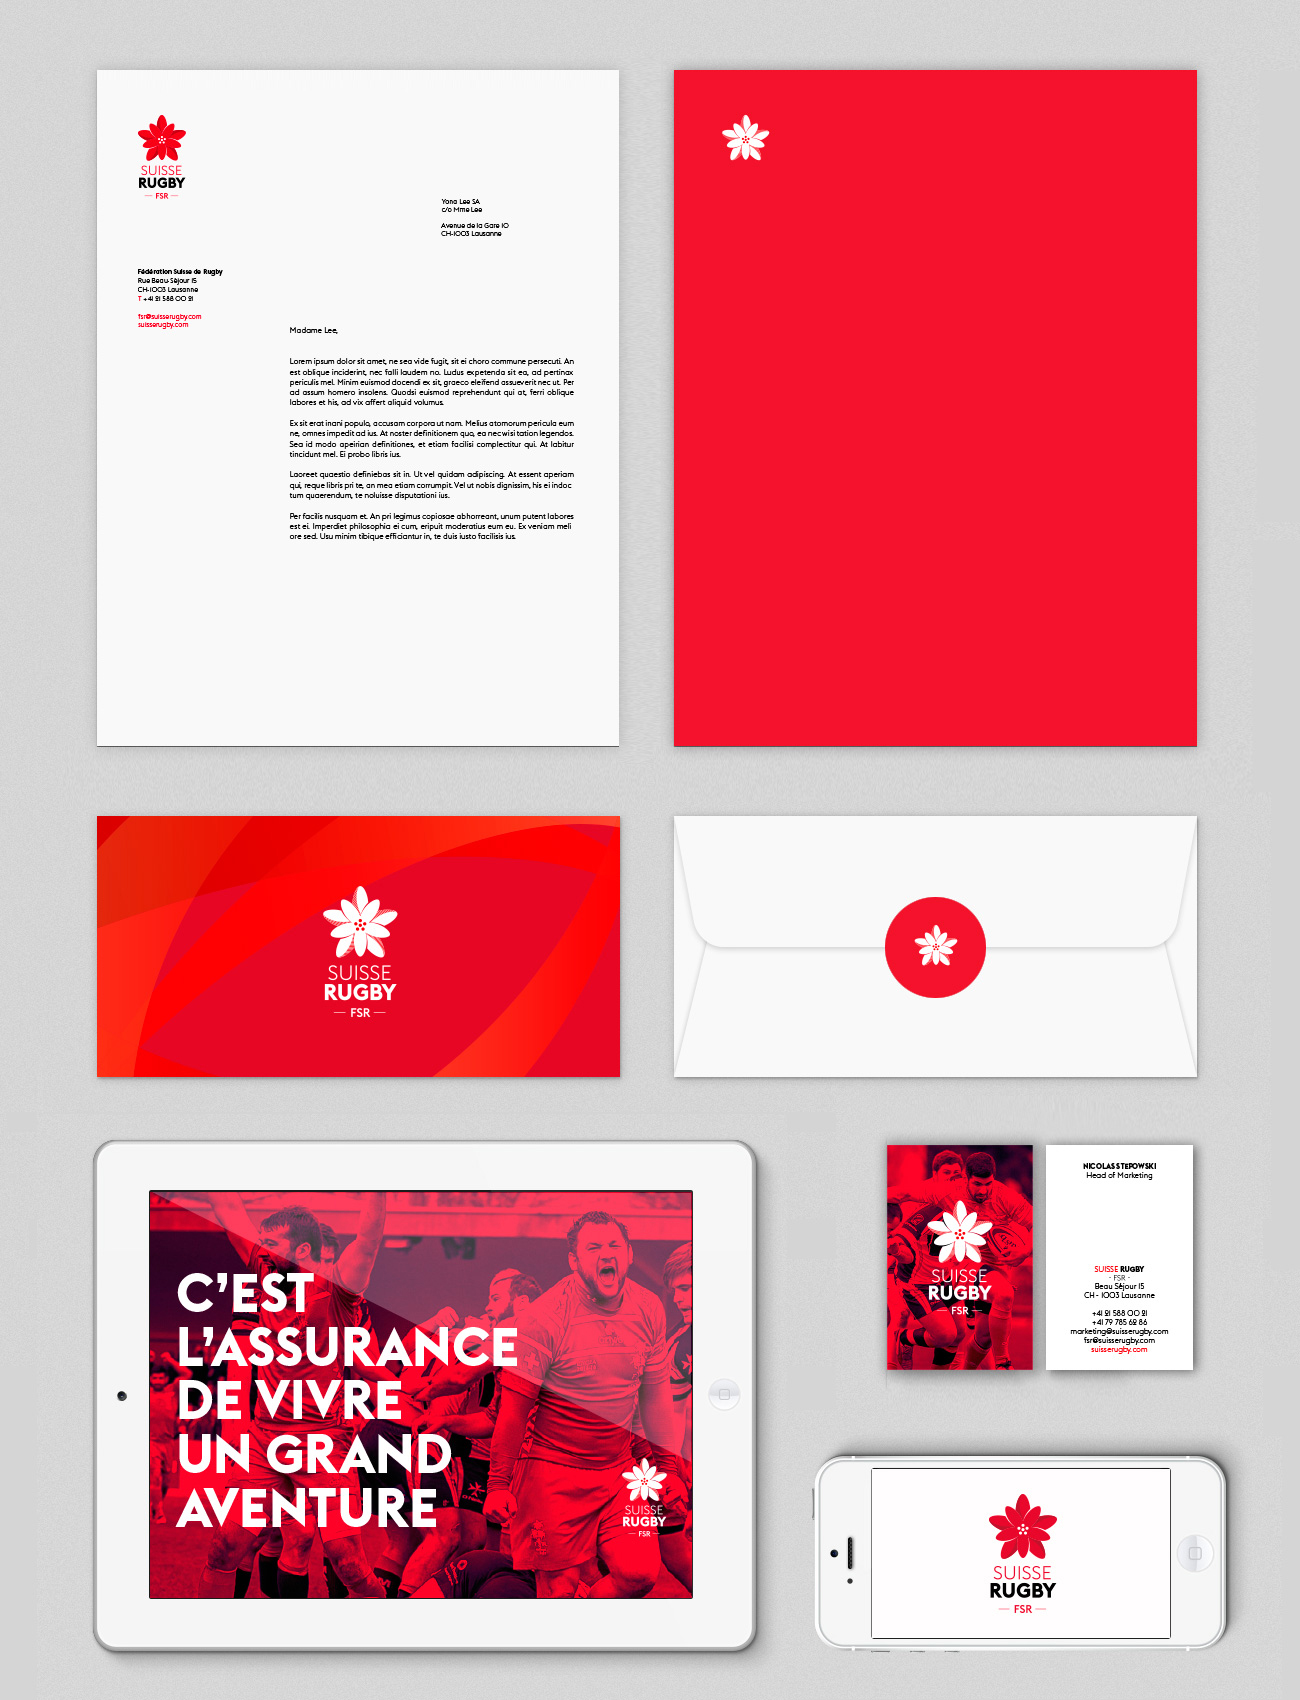 Suisse Rugby FSR Fonts In Use